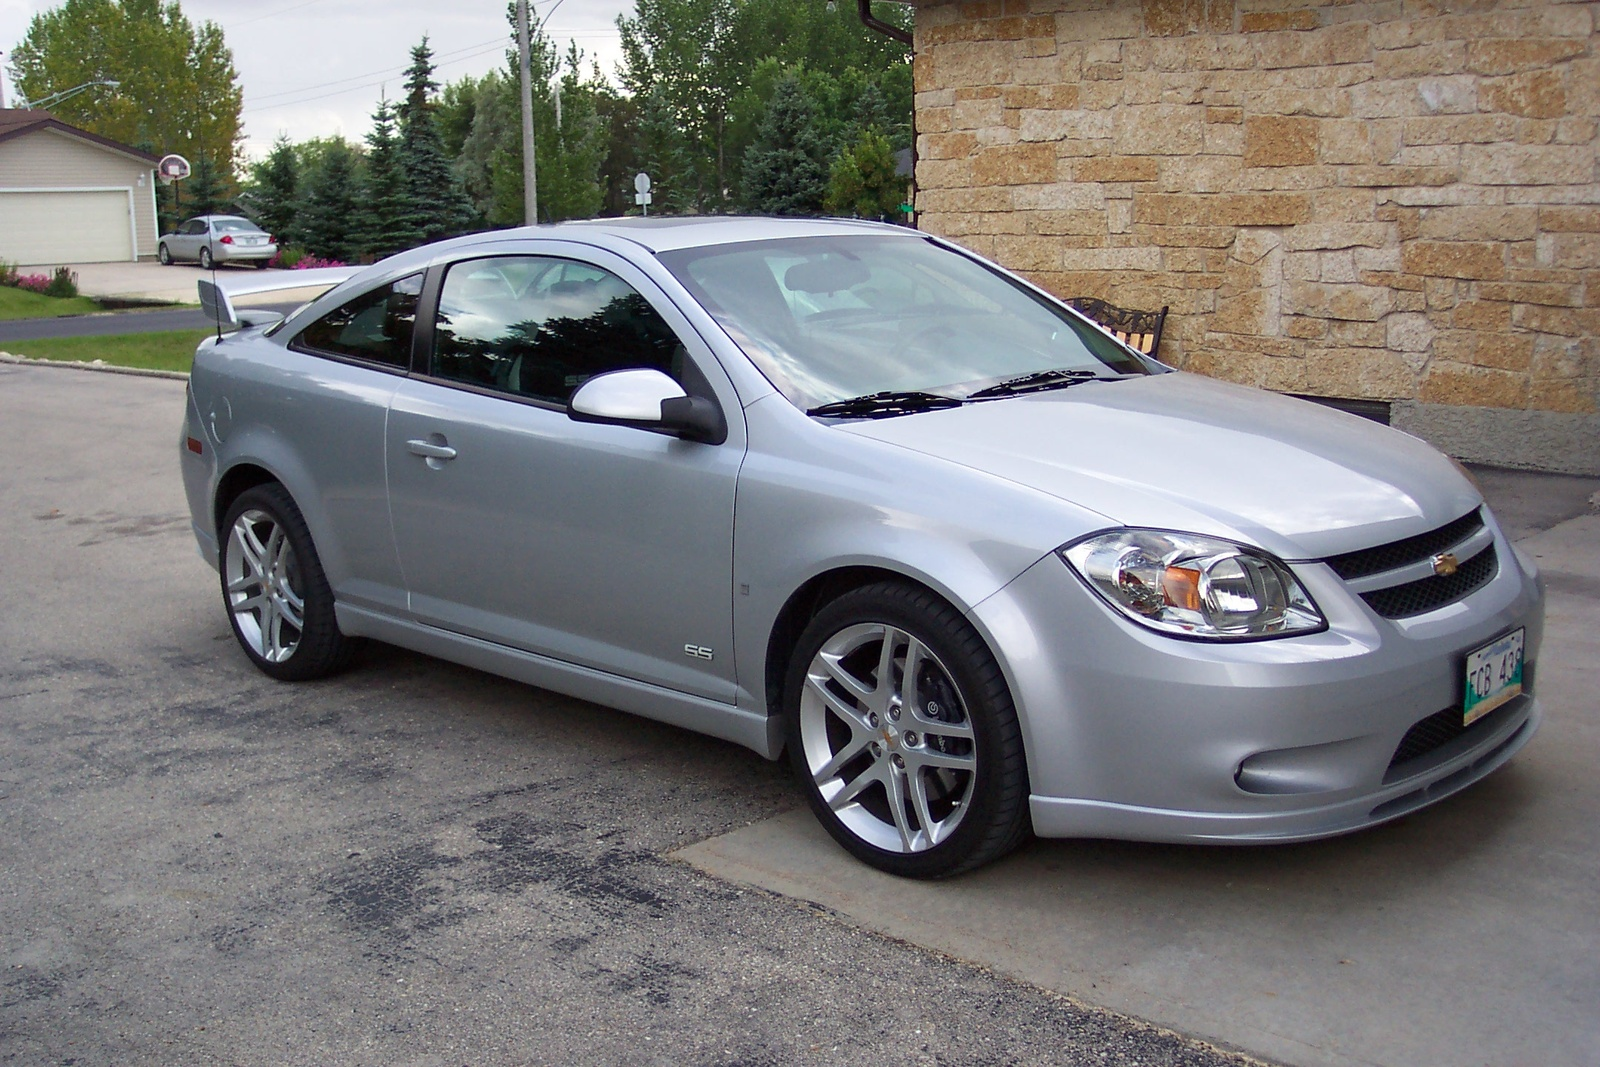 2008 chevrolet cobalt information and photos zombiedrive. Black Bedroom Furniture Sets. Home Design Ideas